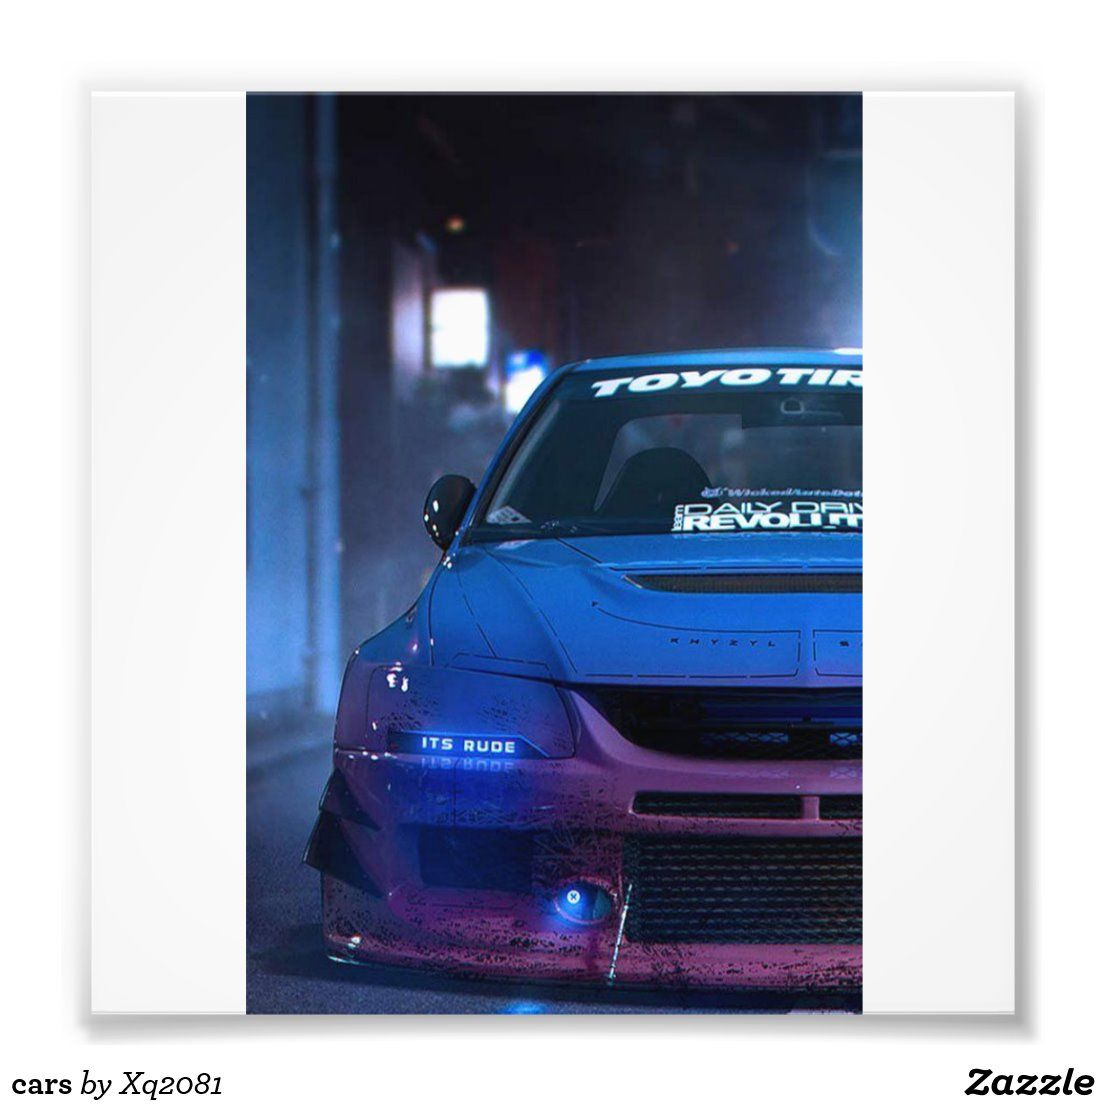 cars photo print | Zazzle.com